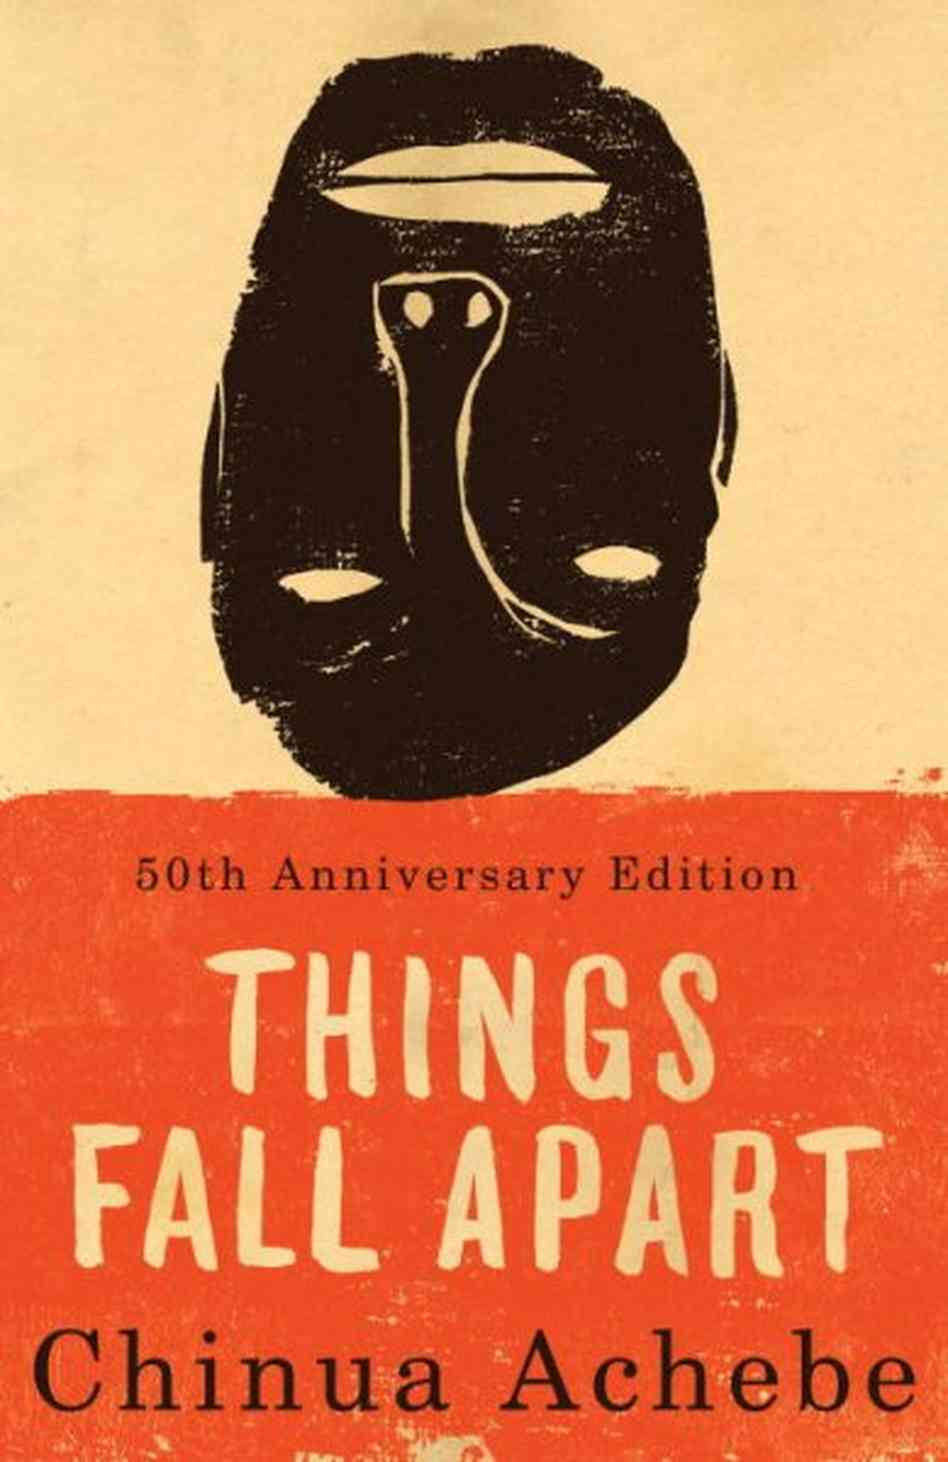 the irony in the novel things fall apart by chinua achebe Chinua achebe was born in eastern nigeria on november 16, 1930, to isaiah and  settling in ogidi, isaiah's ancestral igbo village, five years after chinua achebe's birth  polar undergraduate (1950), a satire of student behavior that was later  in 1958 achebe published things fall apart which won him the margaret.